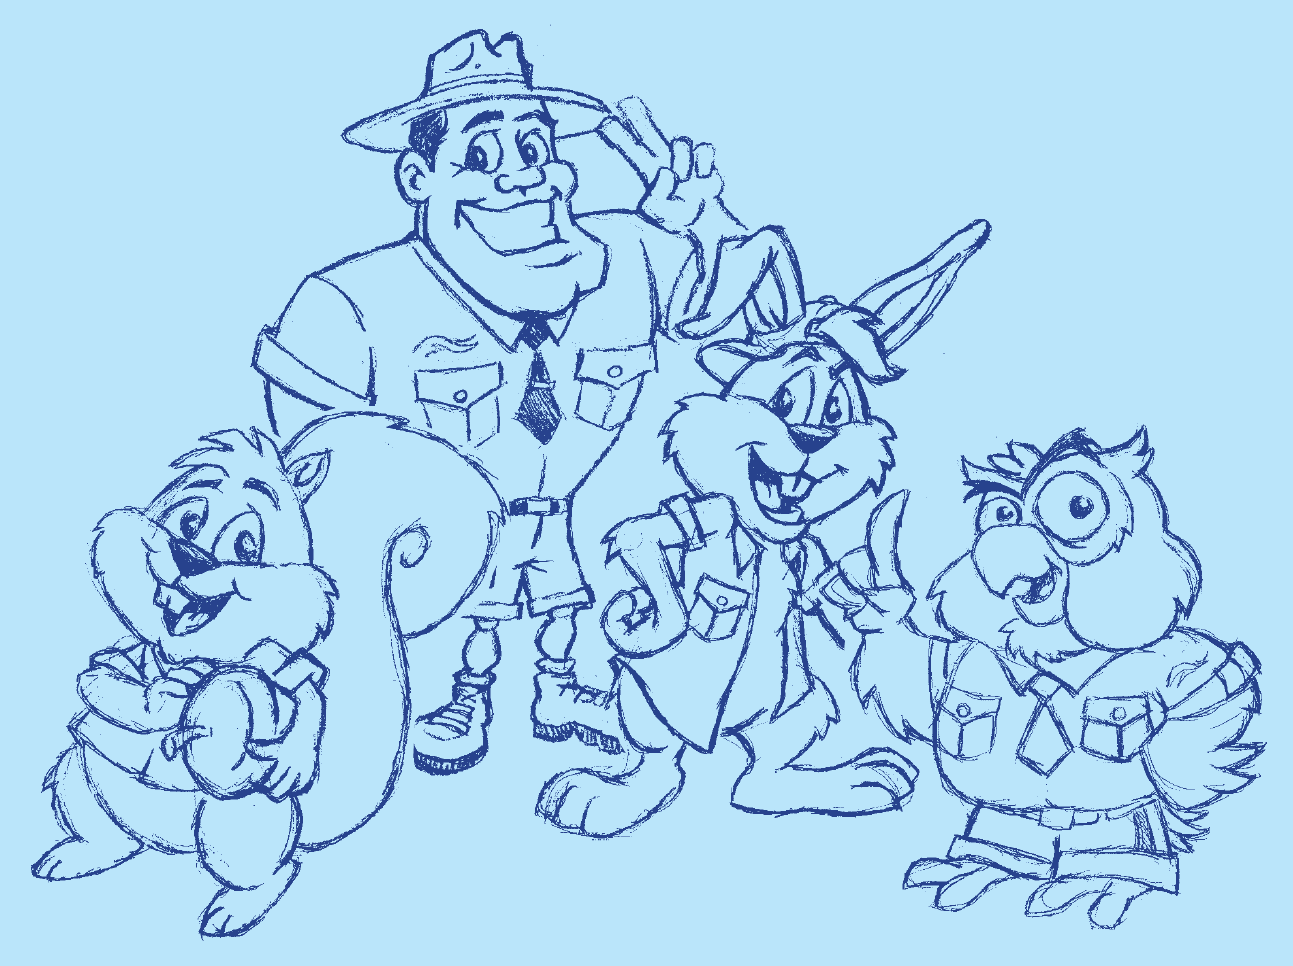 I translated these personalities into sketches based largely on Jon's direction.